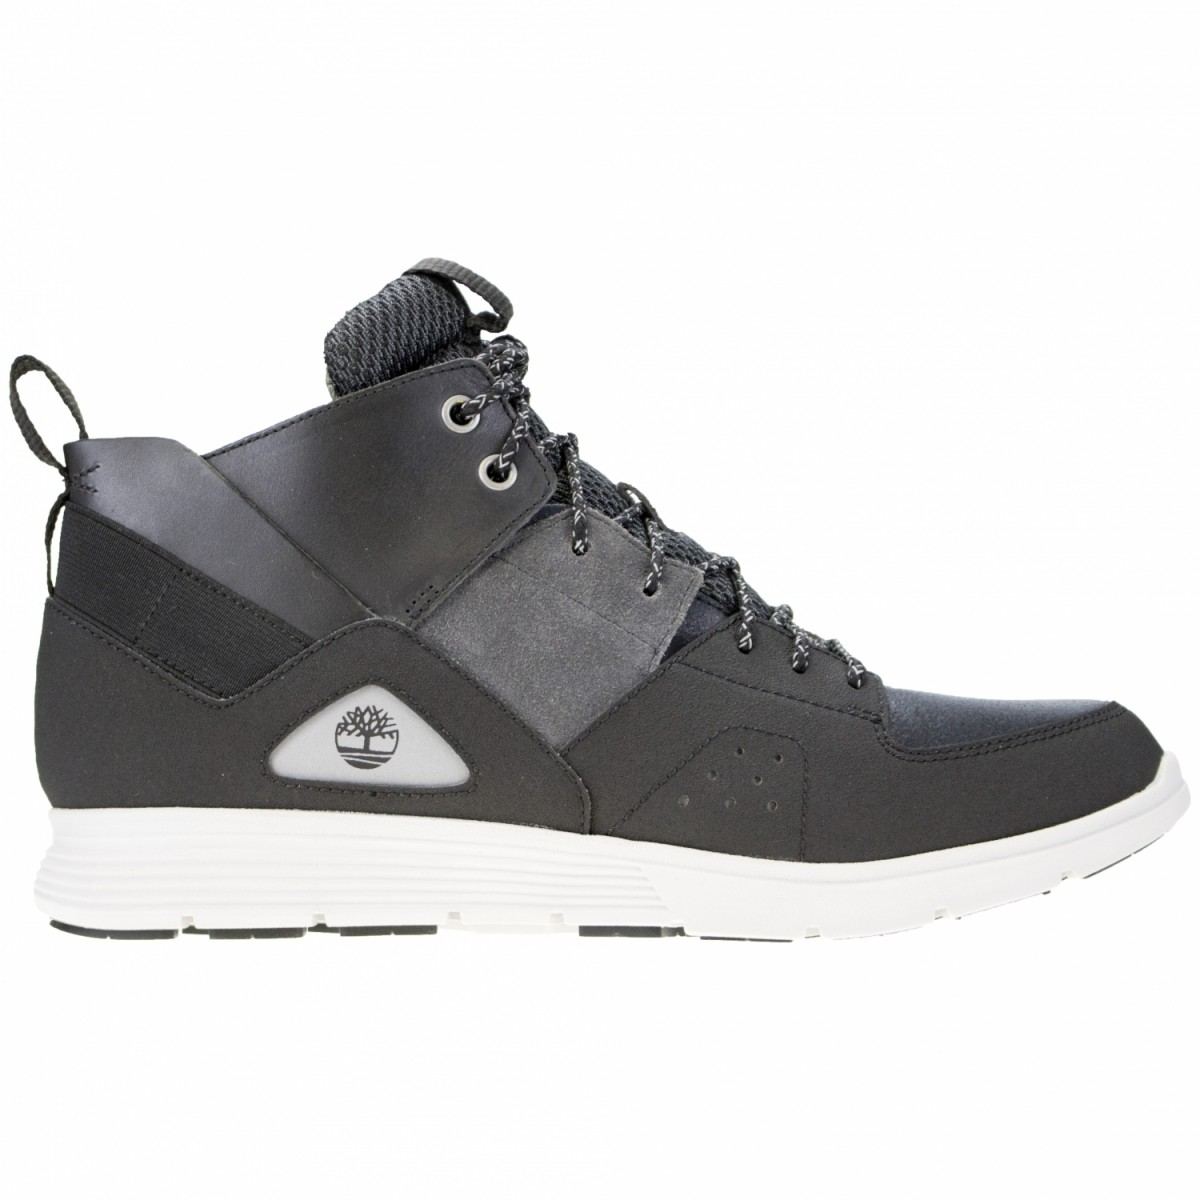 Timberland Killington New Leather Sneaker